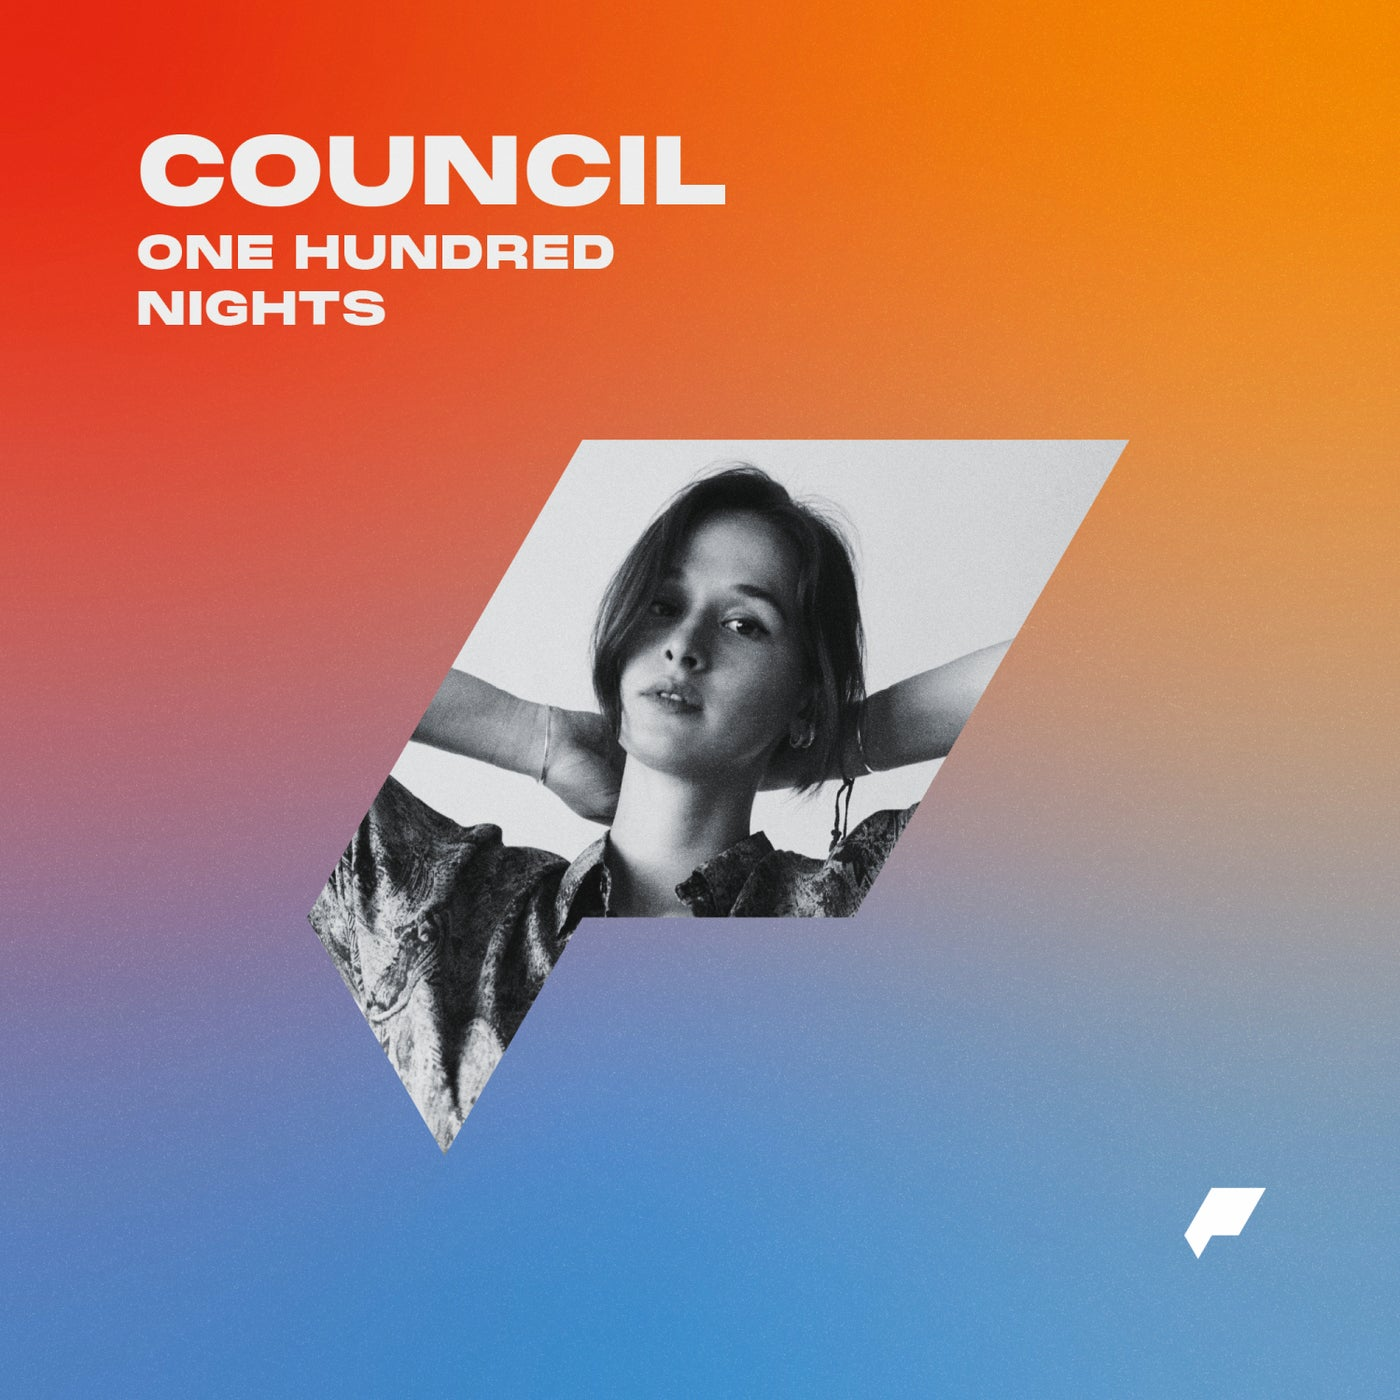 Download One Hundred Nights on Electrobuzz